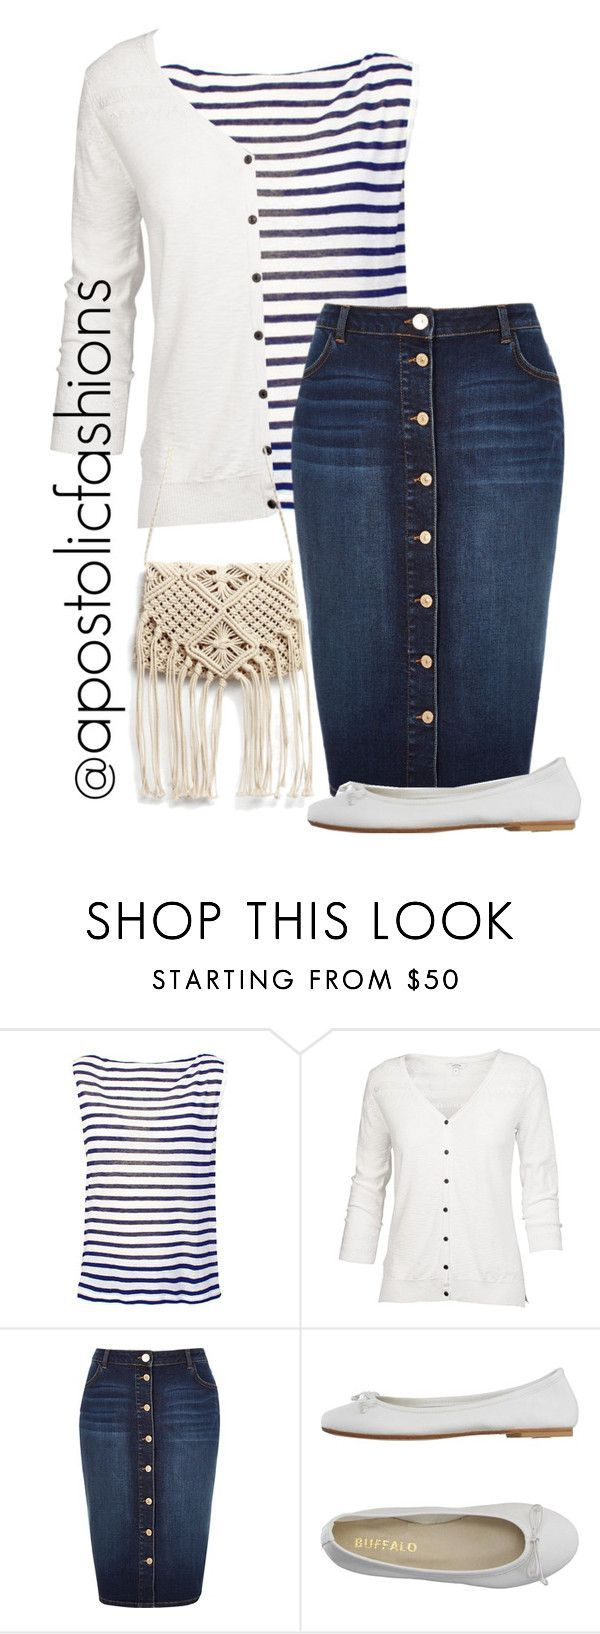 """""""Apostolic Fashions #1282"""" by apostolicfashions on Polyvore featuring T By Alexander Wang, Fat Face, River Island and DIENNEG"""